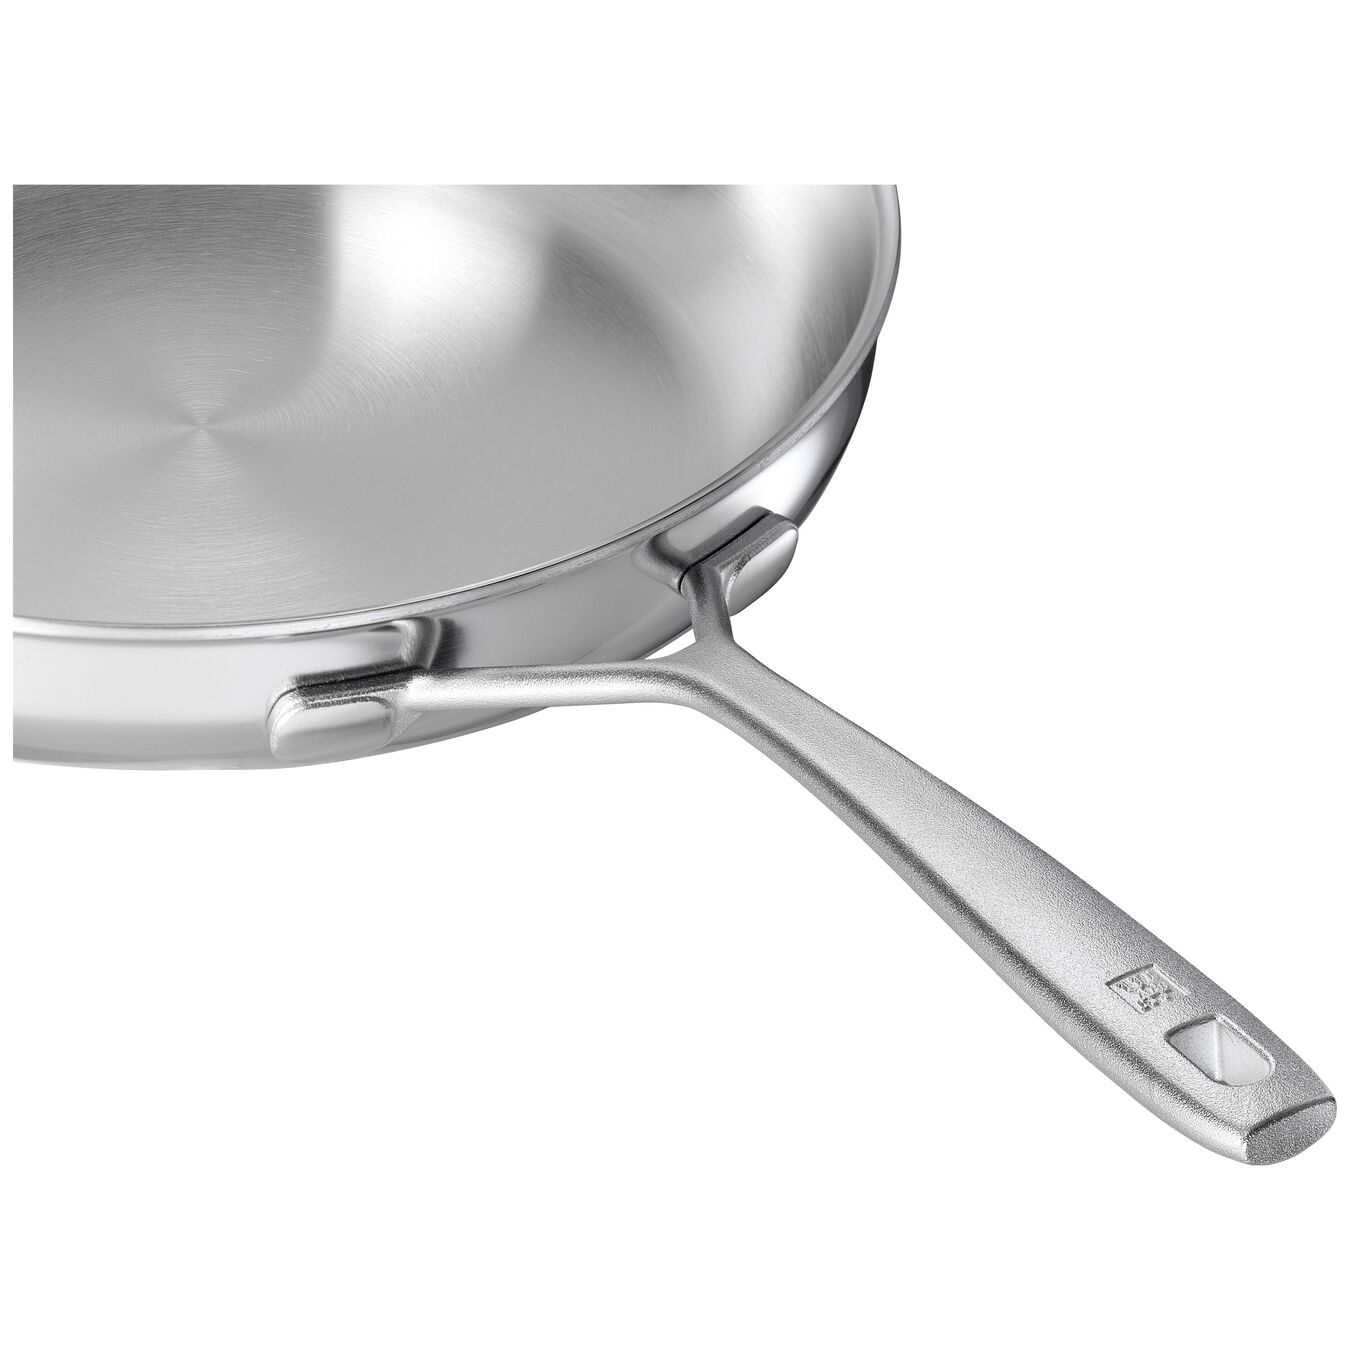 28 cm 18/10 Stainless Steel Poêle,,large 5